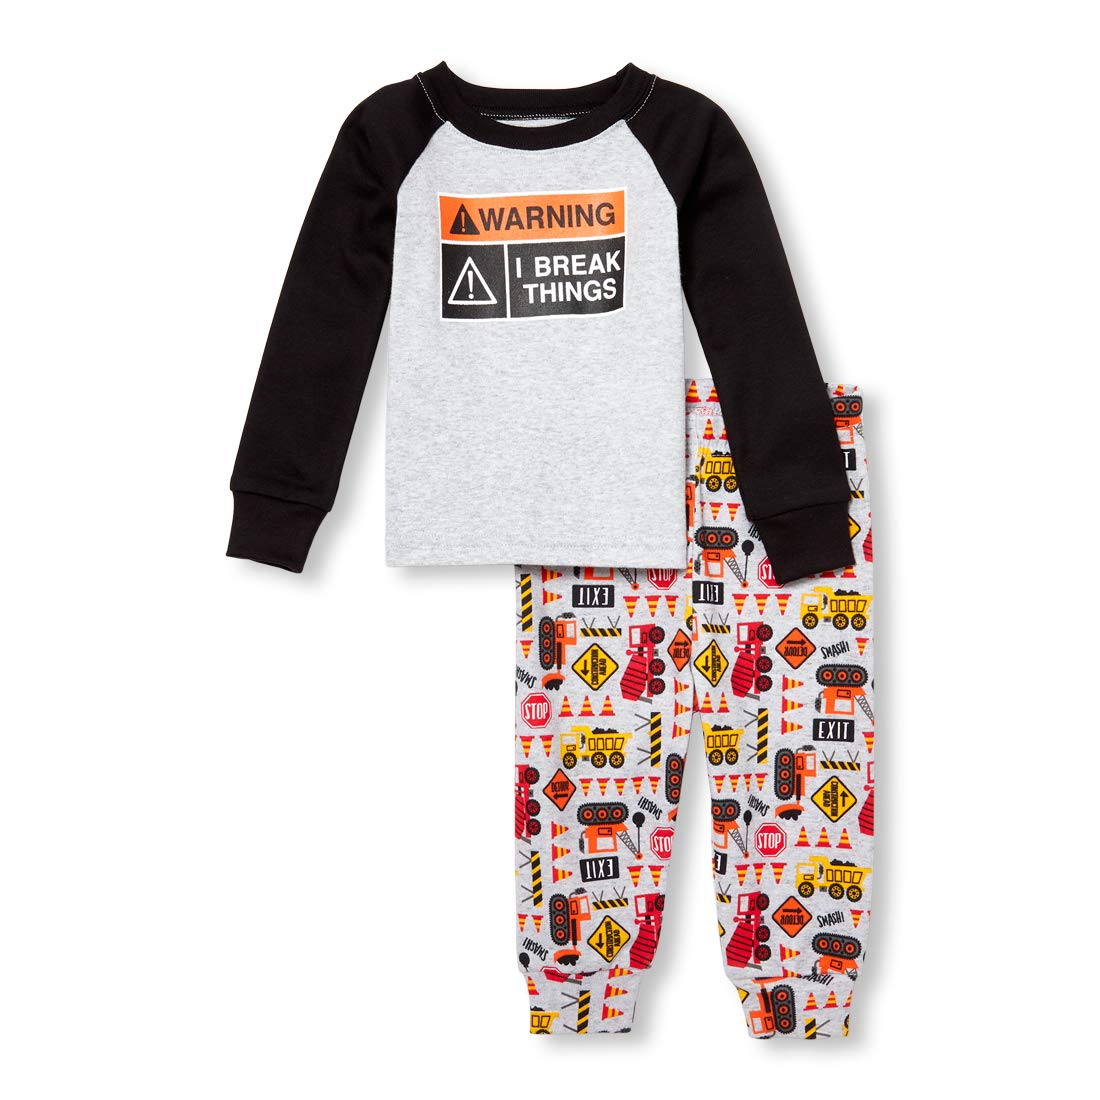 59f62b3ad The Children s Place Baby Boys 2 Piece Long Sleeve Pajama Set ...